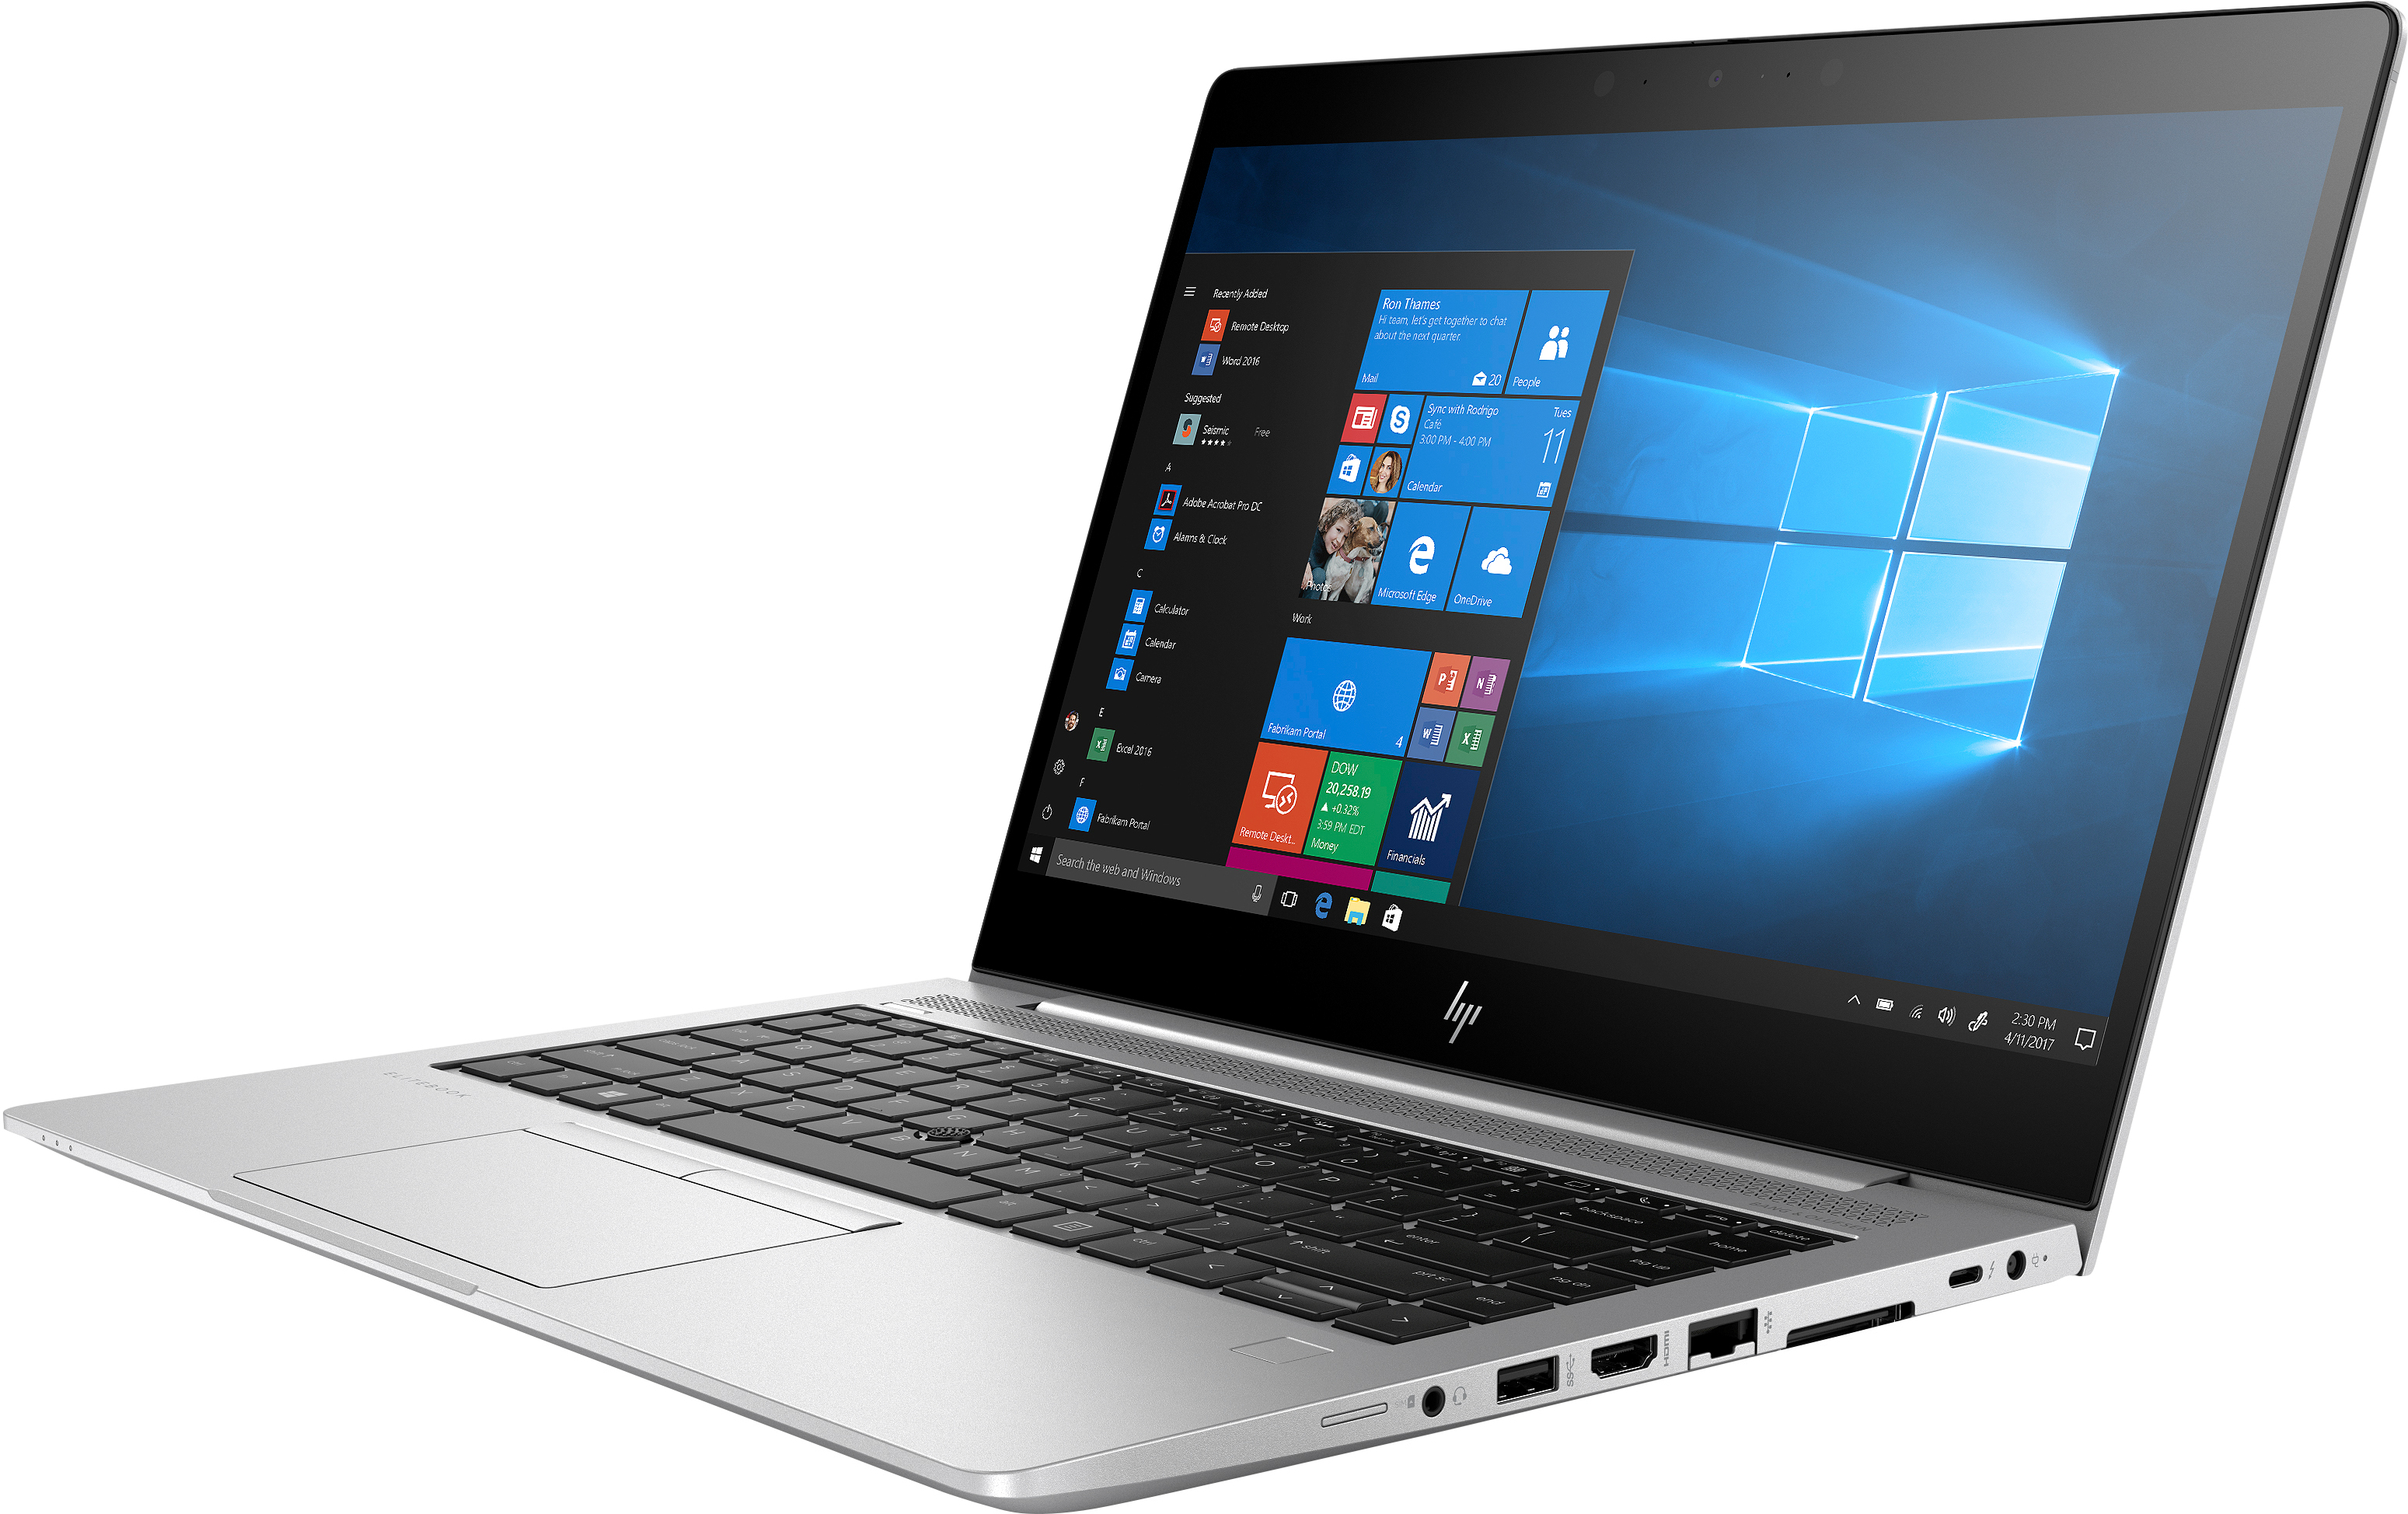 HP EliteBook 840 G6 - Core i7 8565U 1.8 GHz - Win 10 Pro 64-Bit - 16 GB RAM - 512 - Notebook - Core i7 Mobile